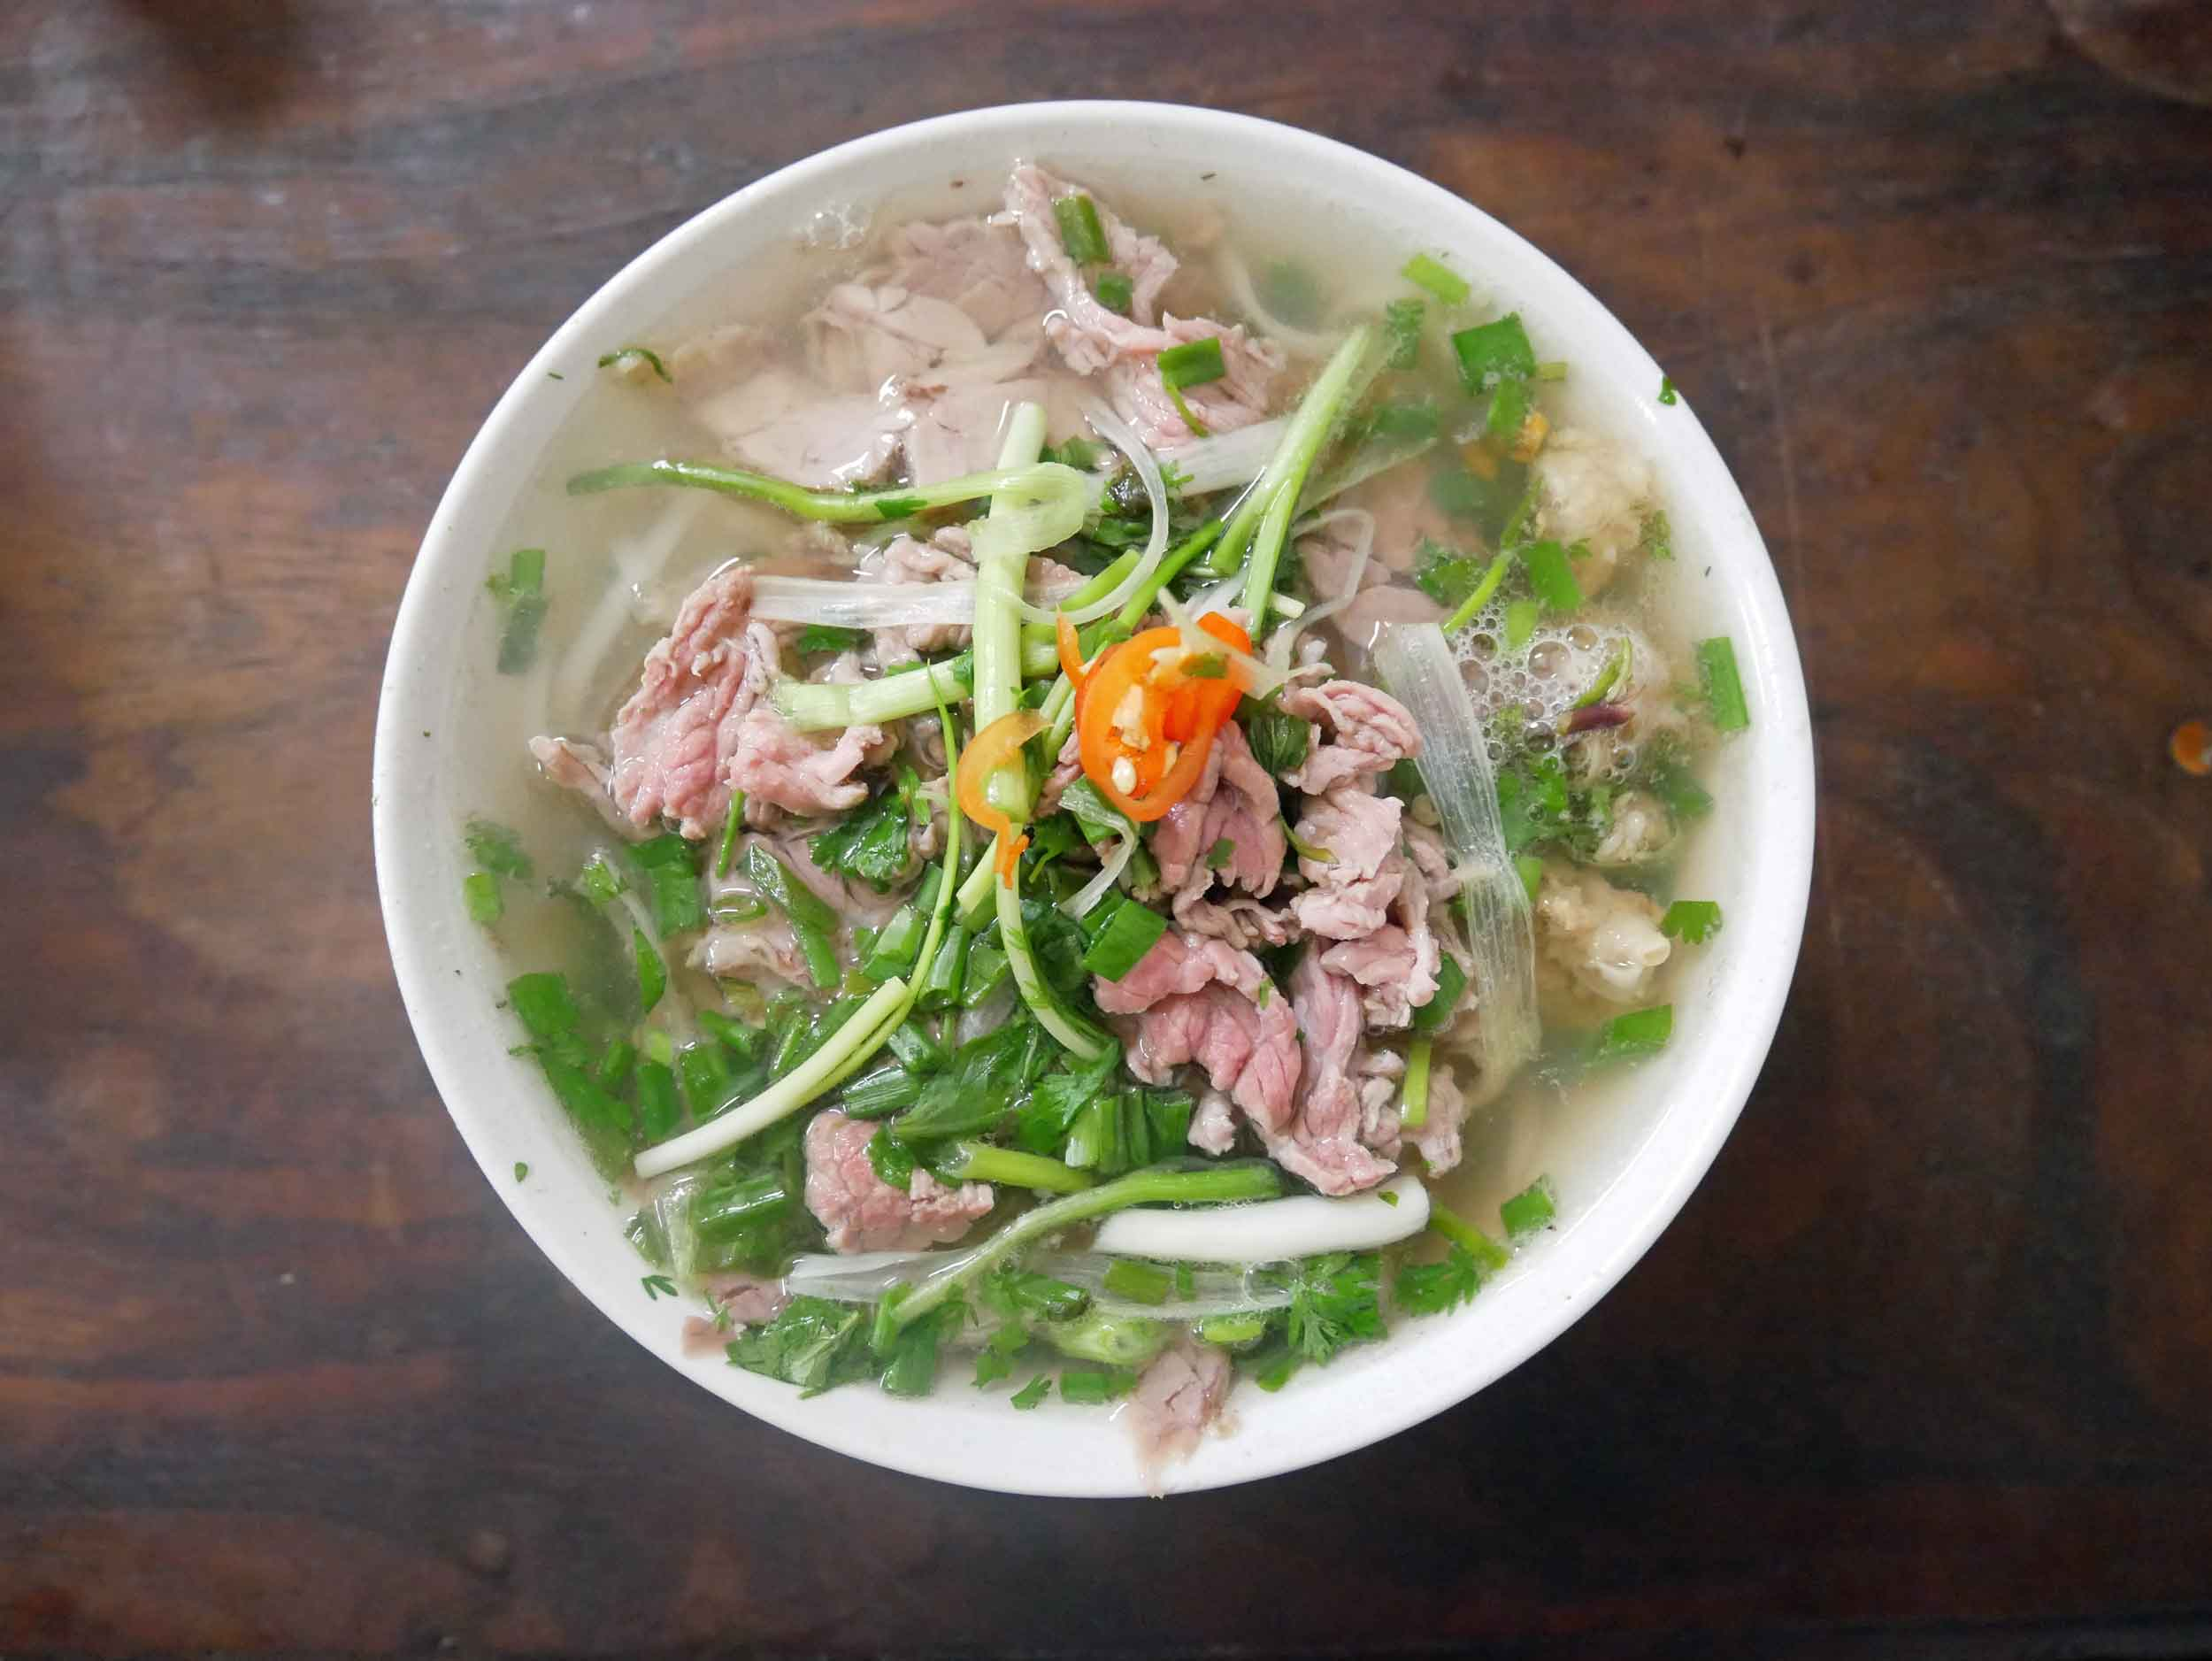 The Pho in Hanoi is clearer and brighter than the Pho we found in the South.